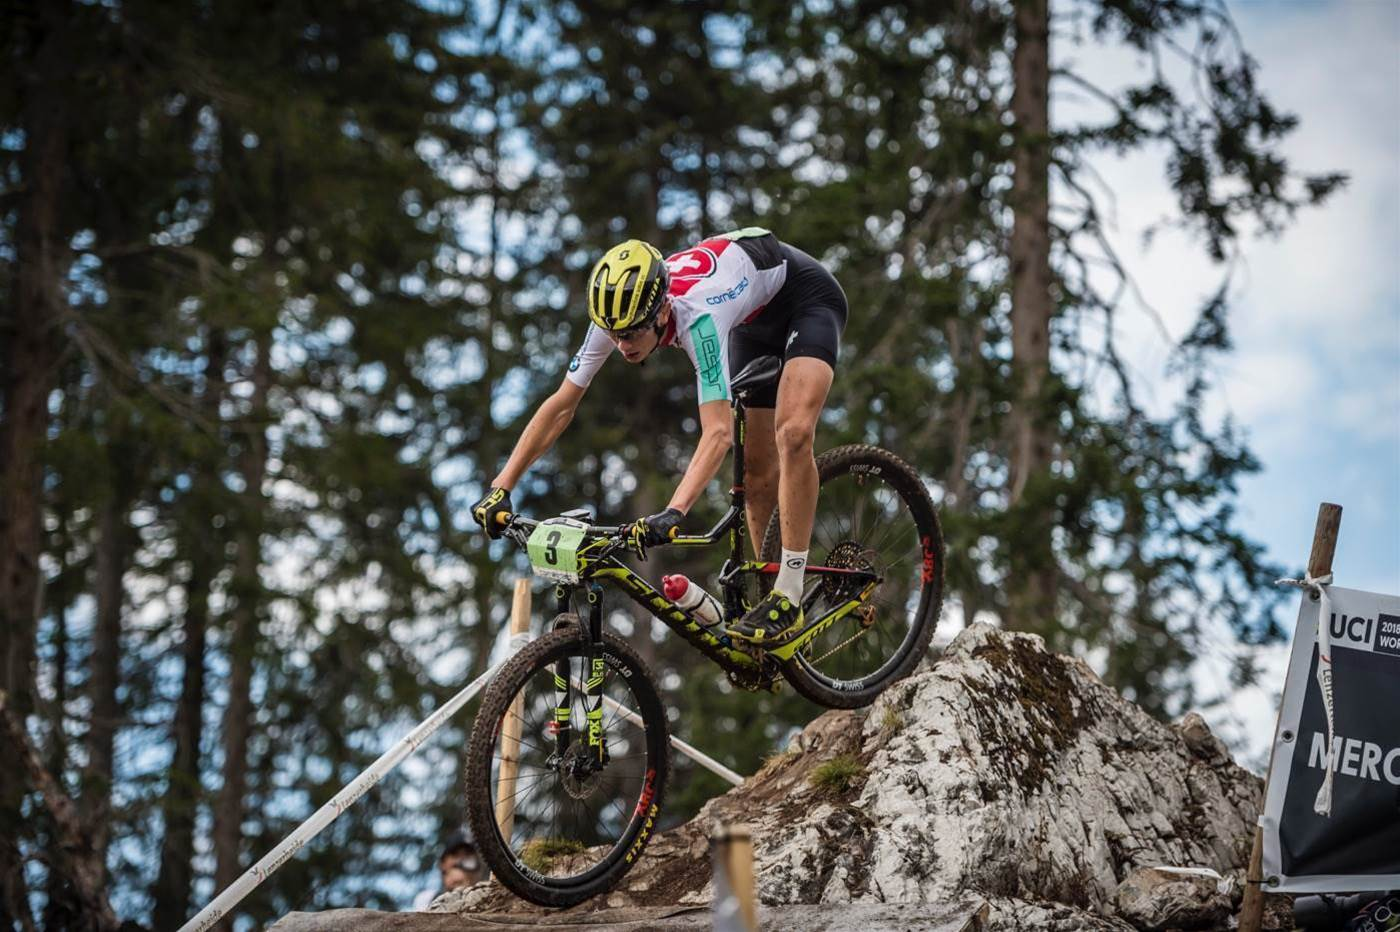 Stigger and Balmer win Junior XCO titles